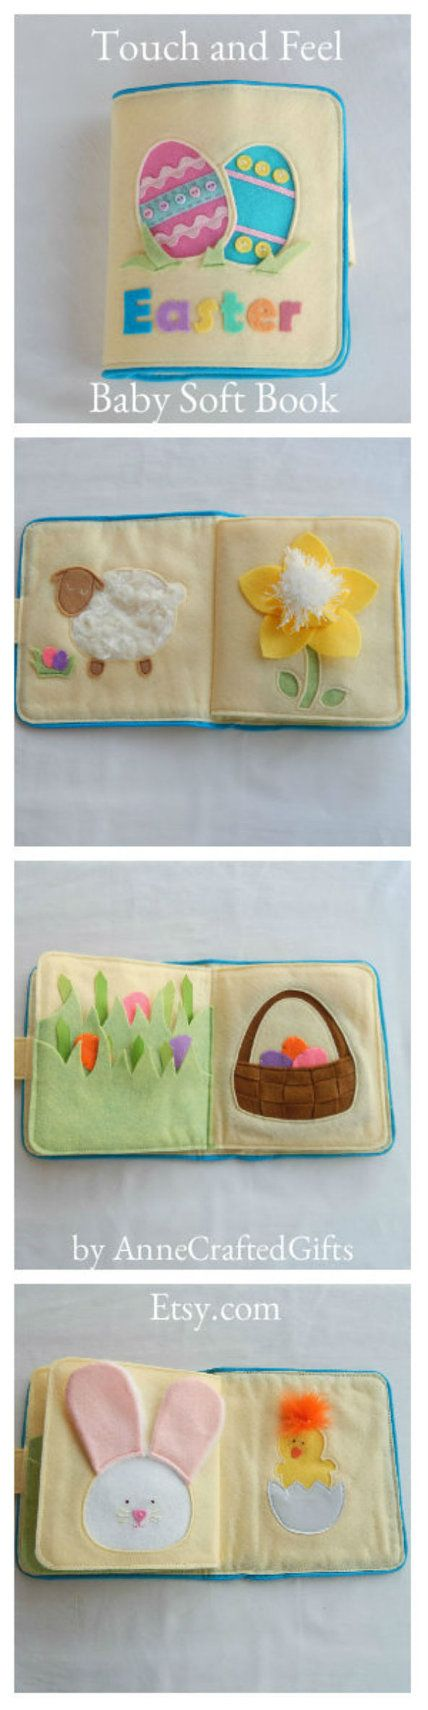 This unique quiet book is a cute gift idea for your little one's Easter basket. ...